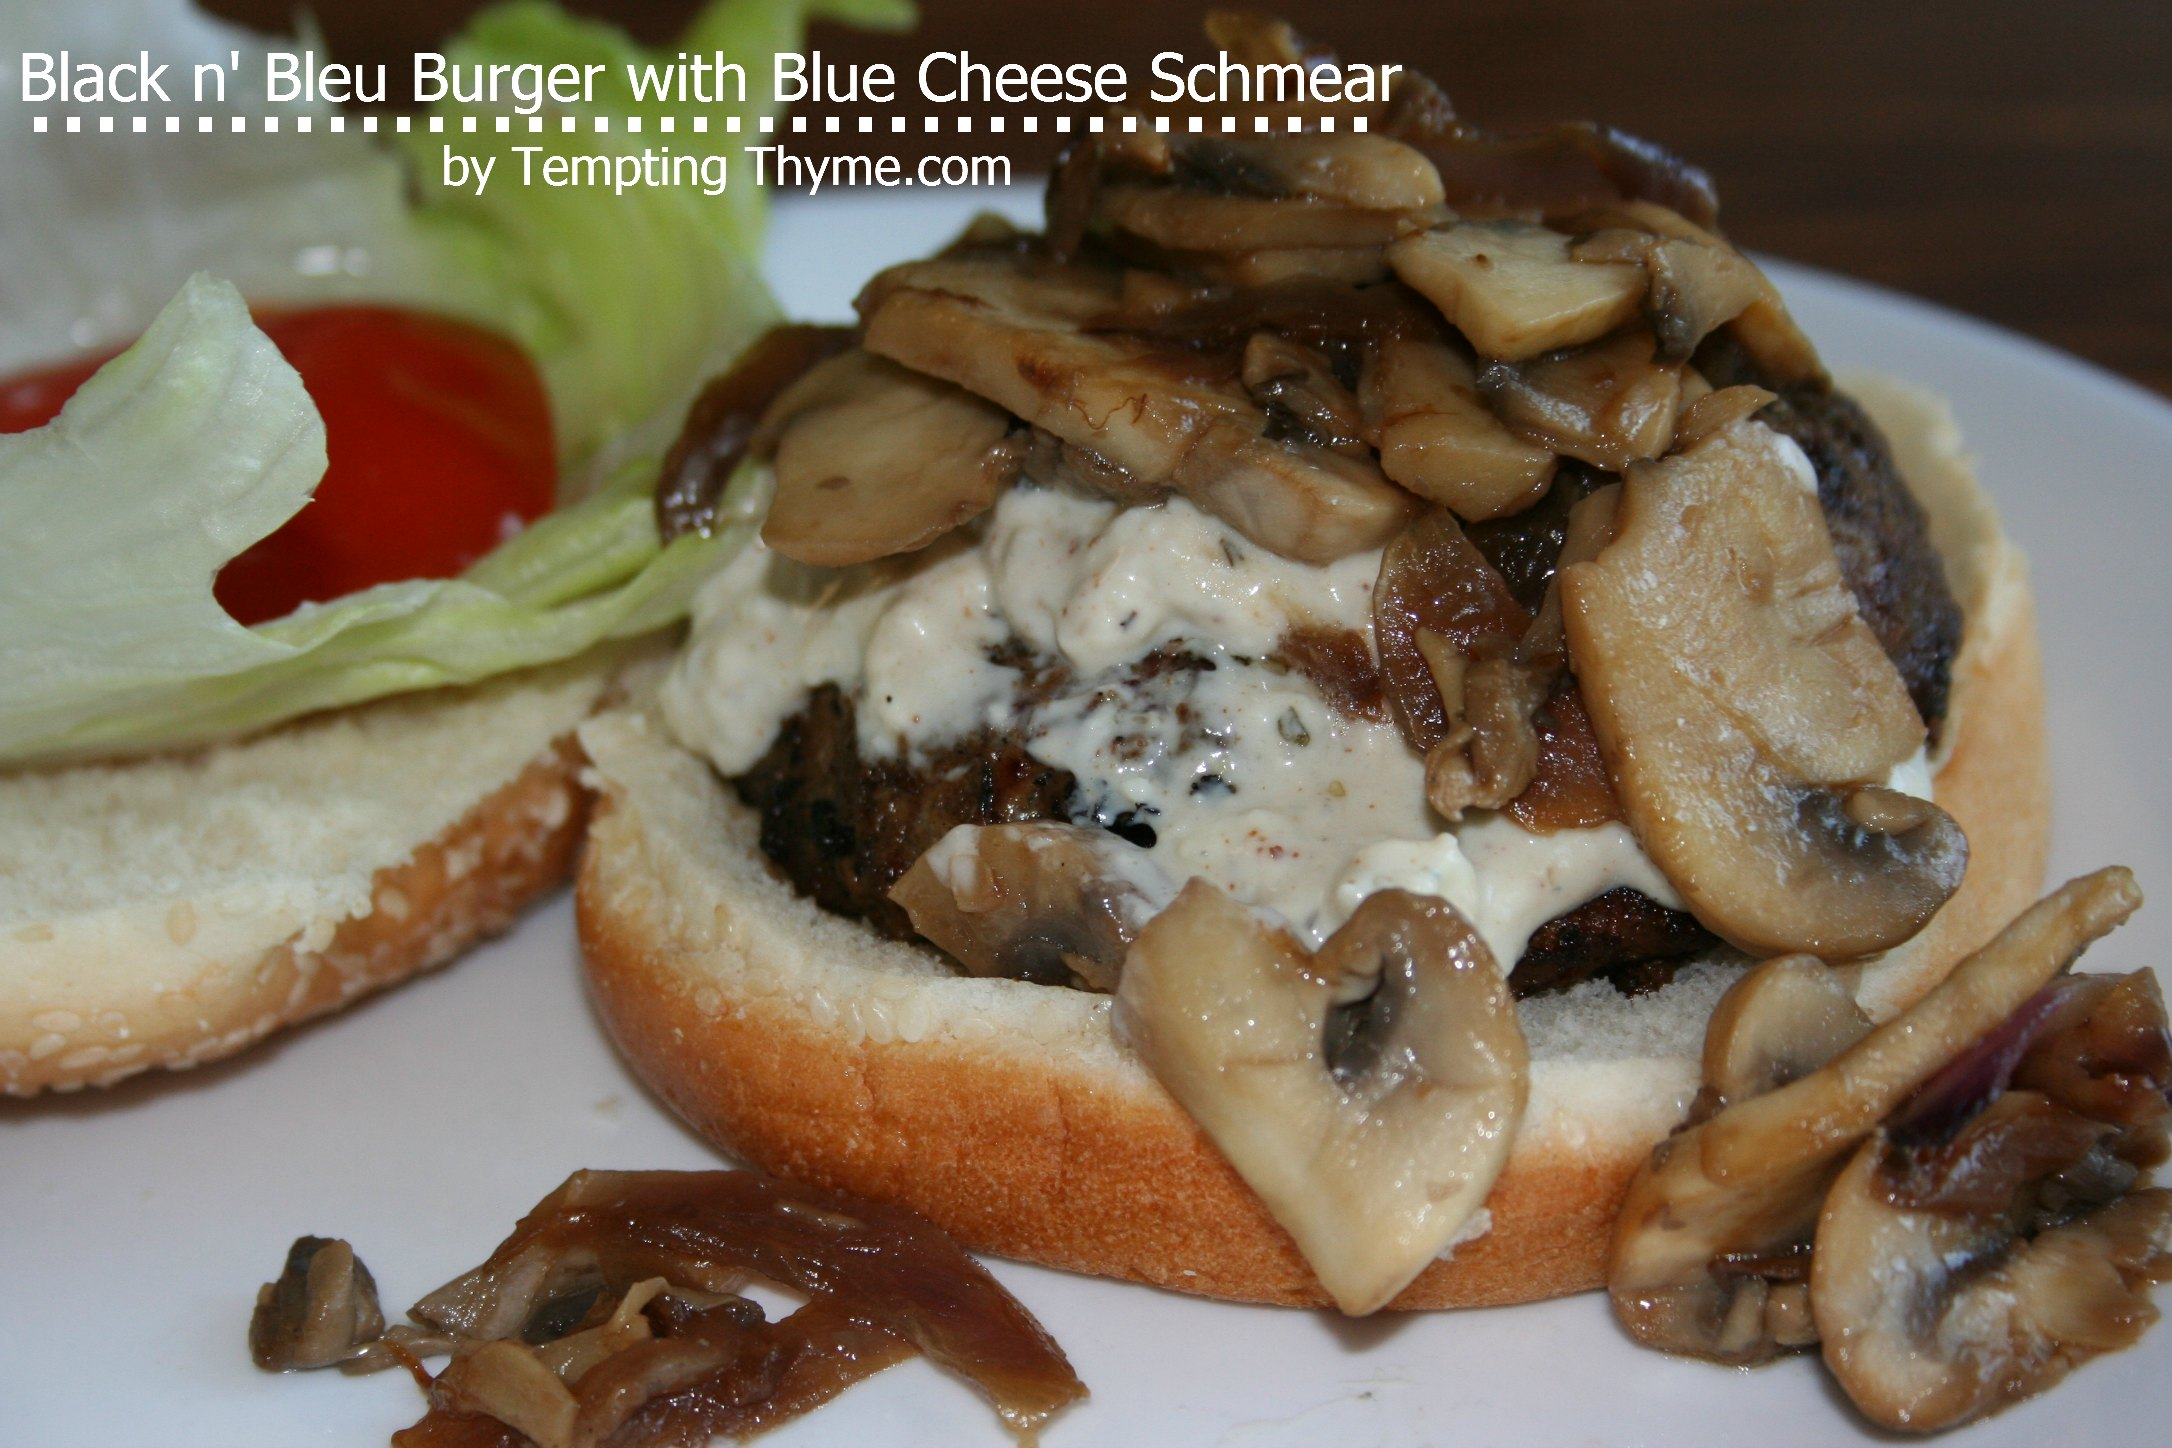 Black n' Blue Burger